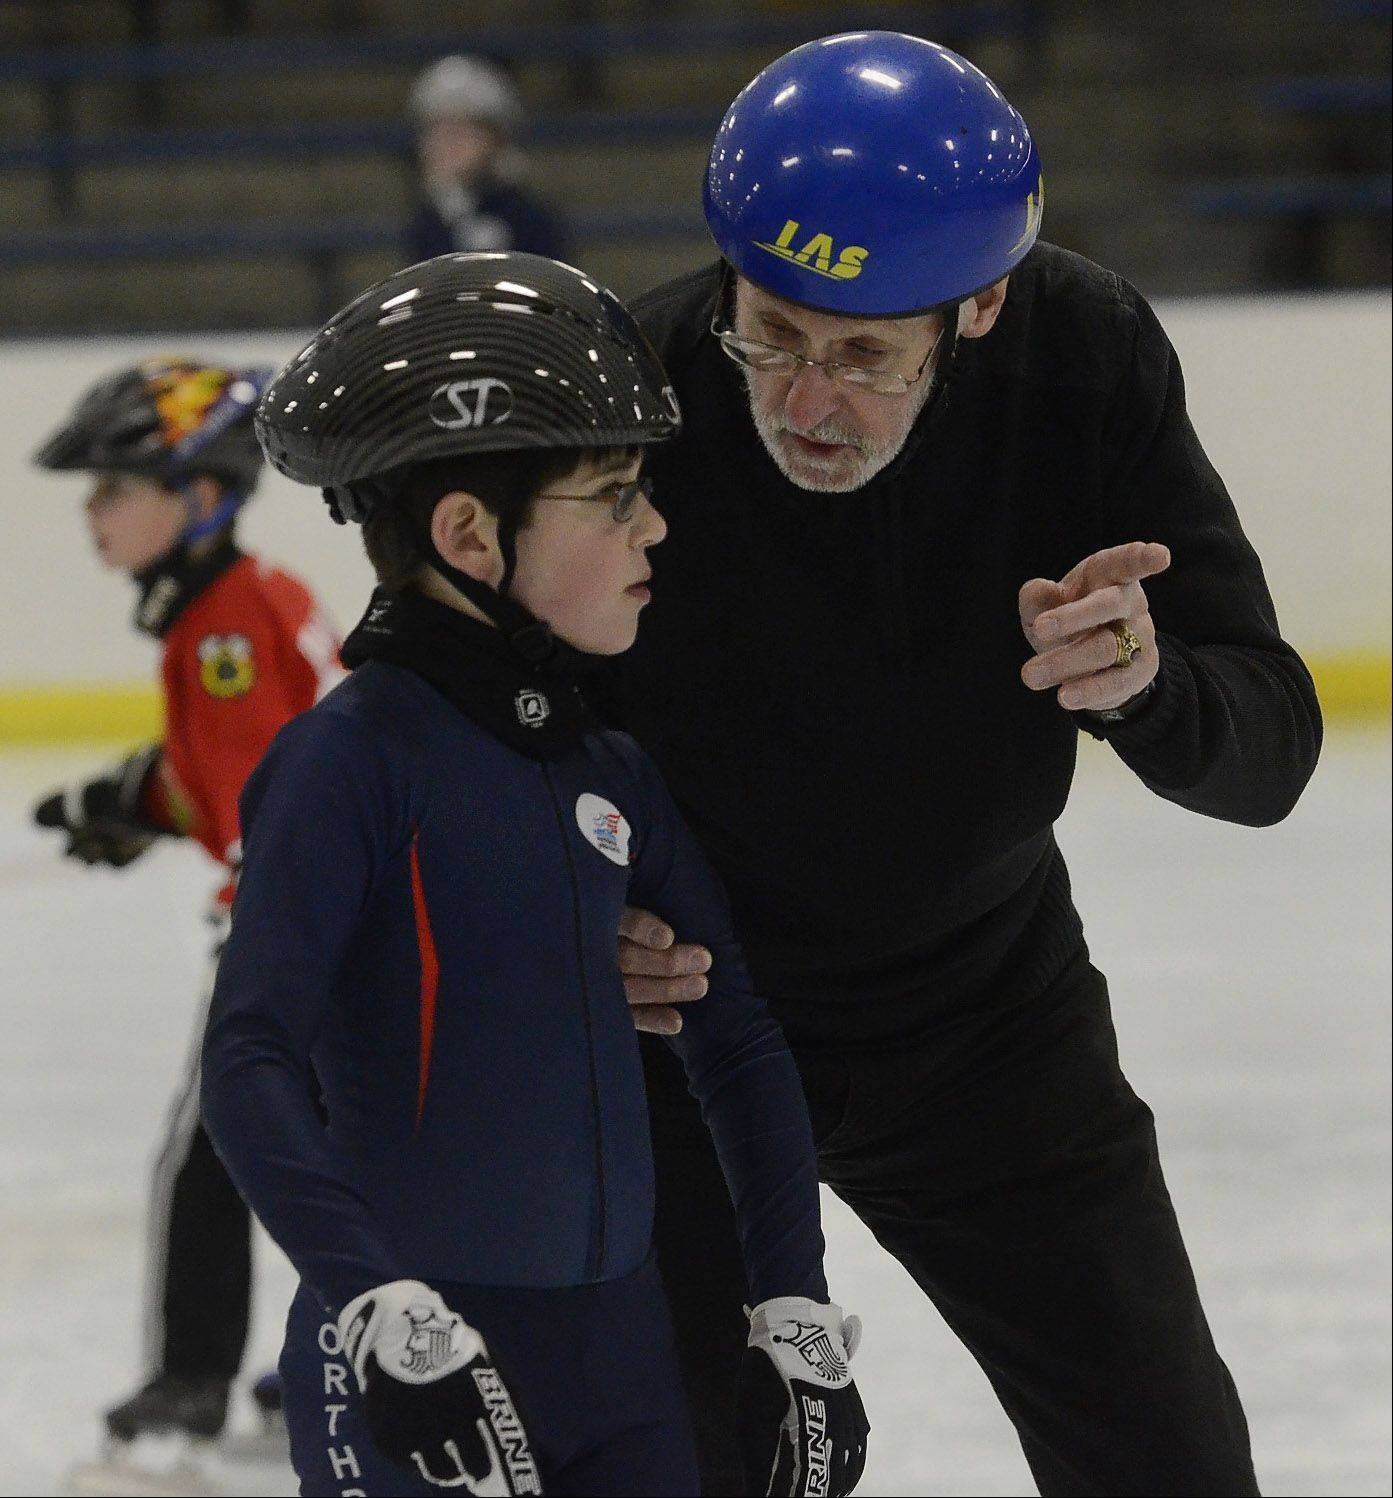 Olympic speed skater Chuck Burke, 82, of Northbrook, offers some advice to 9-year-old Reese Melsher during practice with the Northbrook Speed Skating Club last week.